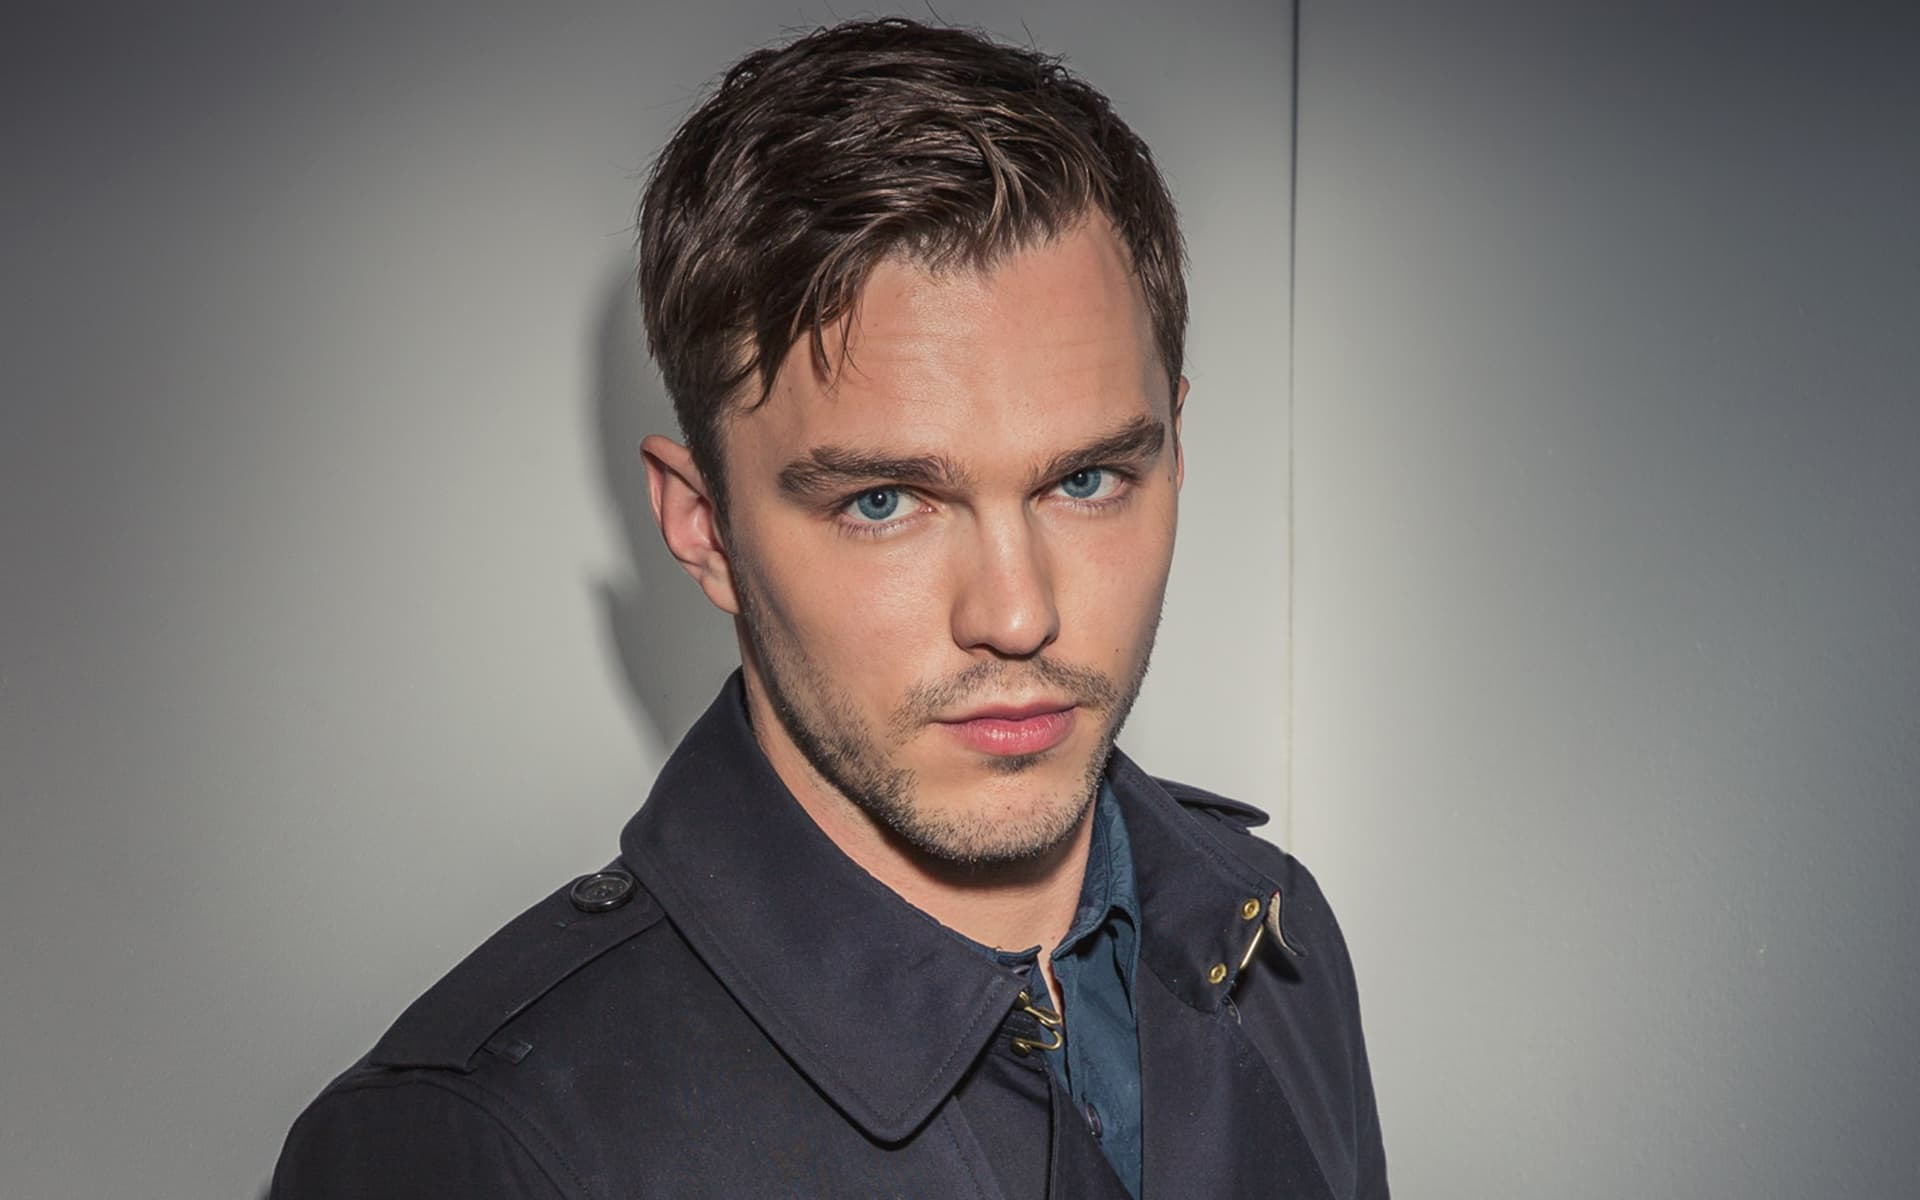 Boy Hairstyle Hd Wallpaper Nicholas Hoult Hd Wallpapers For Desktop Free